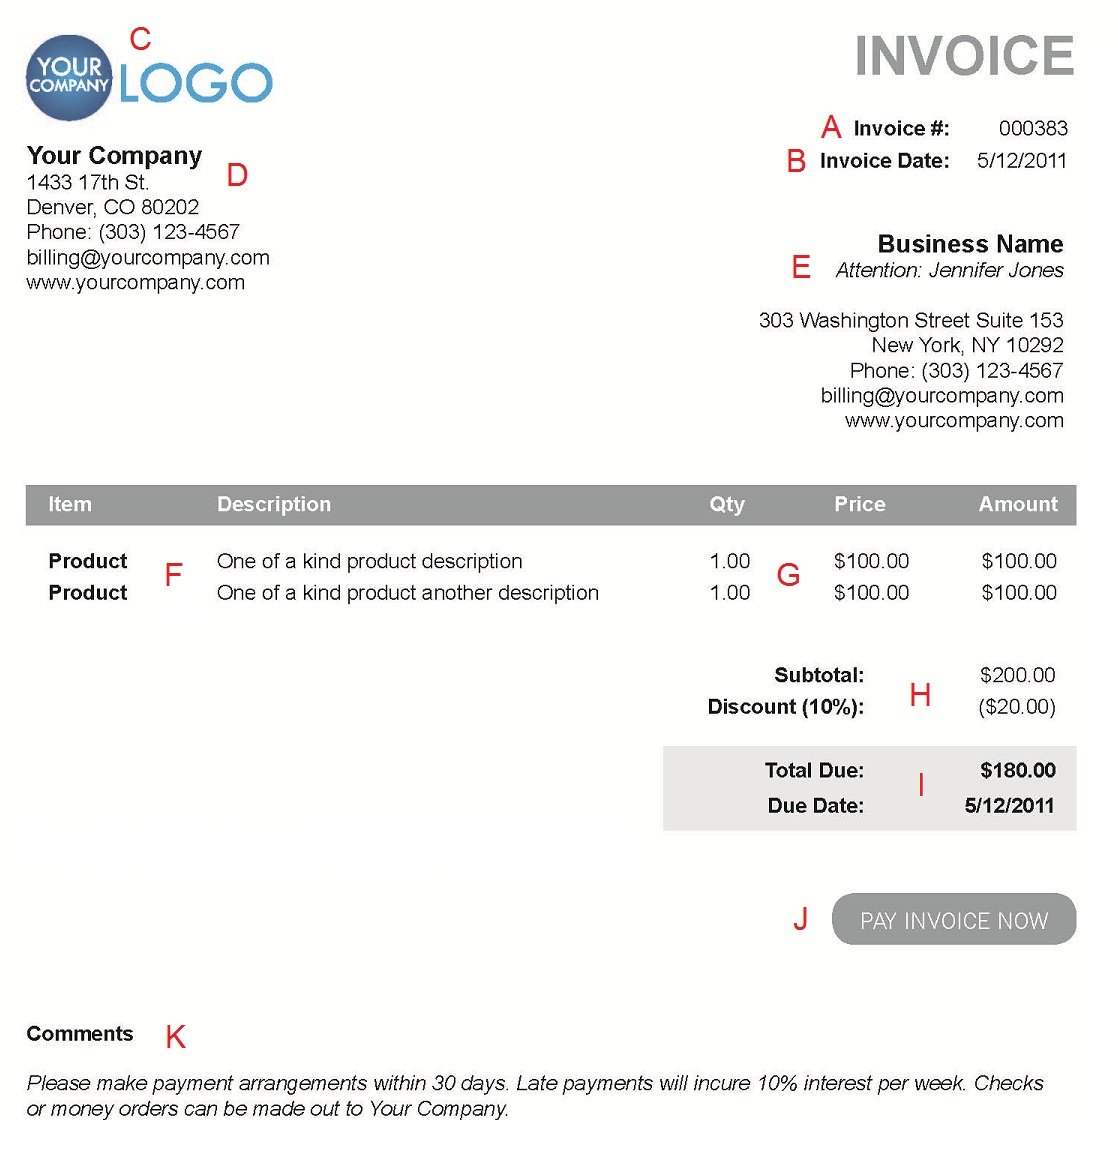 Aaaaeroincus  Scenic The  Different Sections Of An Electronic Payment Invoice With Fetching A  With Amazing Invoice Reciept Also Create Invoice Free Online In Addition Example Of A Invoice And Quickbooks Invoice Import As Well As Invoice In Paypal Additionally What Is The Difference Between Invoice And Msrp From Paysimplecom With Aaaaeroincus  Fetching The  Different Sections Of An Electronic Payment Invoice With Amazing A  And Scenic Invoice Reciept Also Create Invoice Free Online In Addition Example Of A Invoice From Paysimplecom